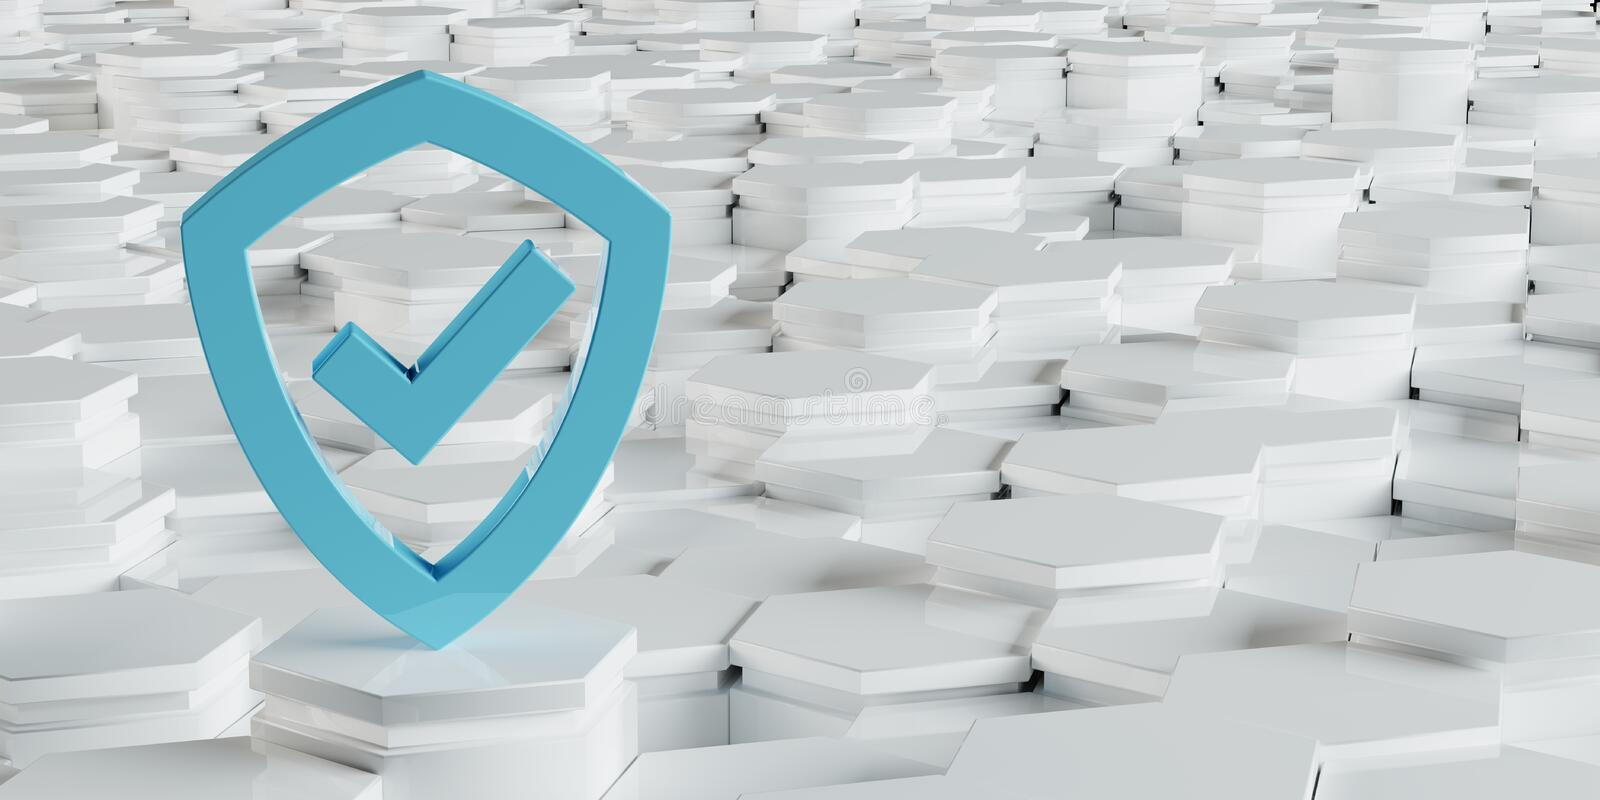 White blue shield icon on hexagons background 3D rendering royalty free illustration